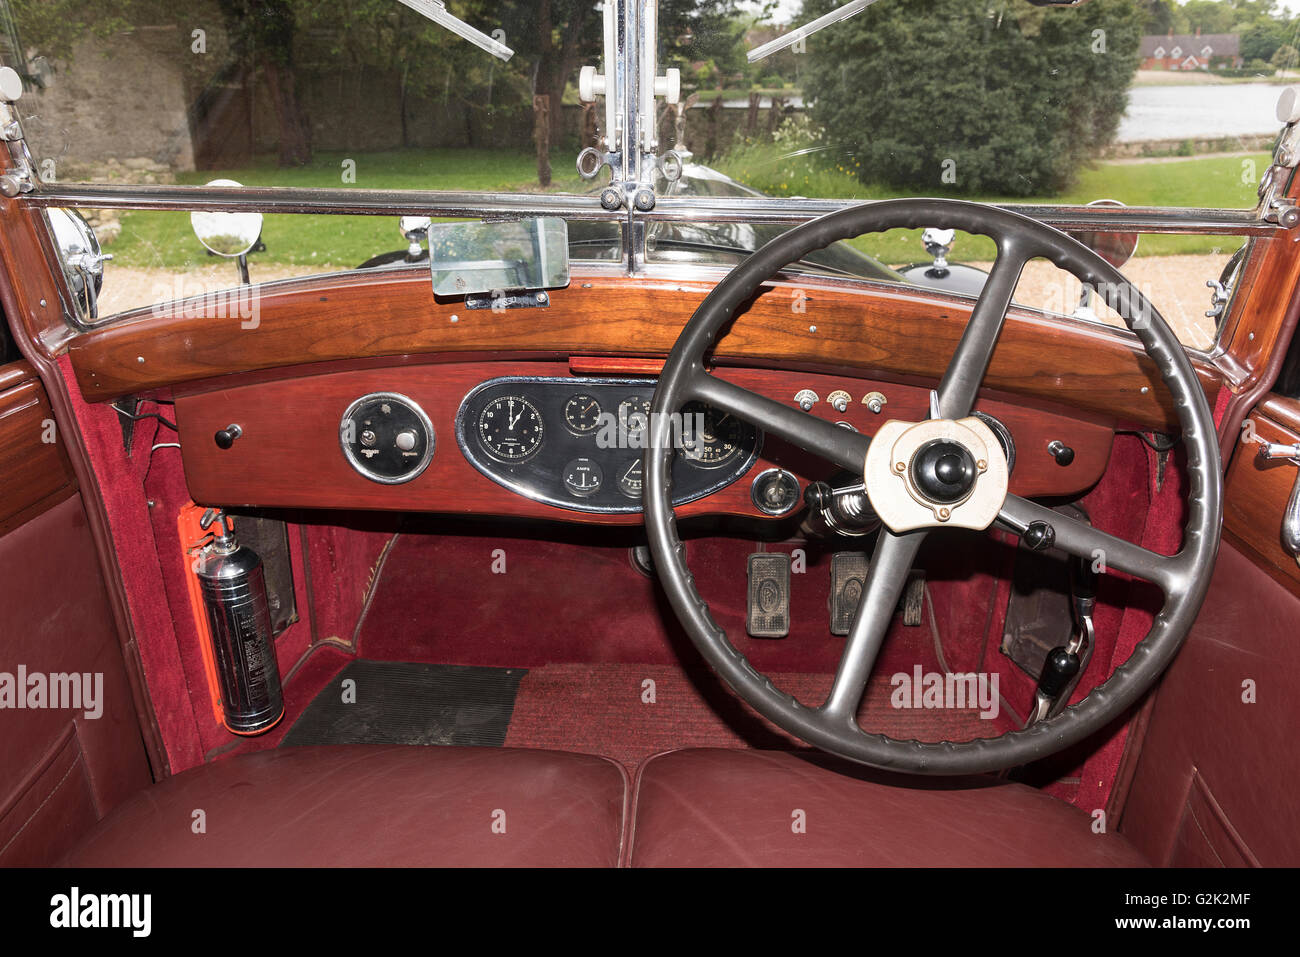 1933 Rolls Royce Phantom II Sedanca de Ville intérieur Photo Stock